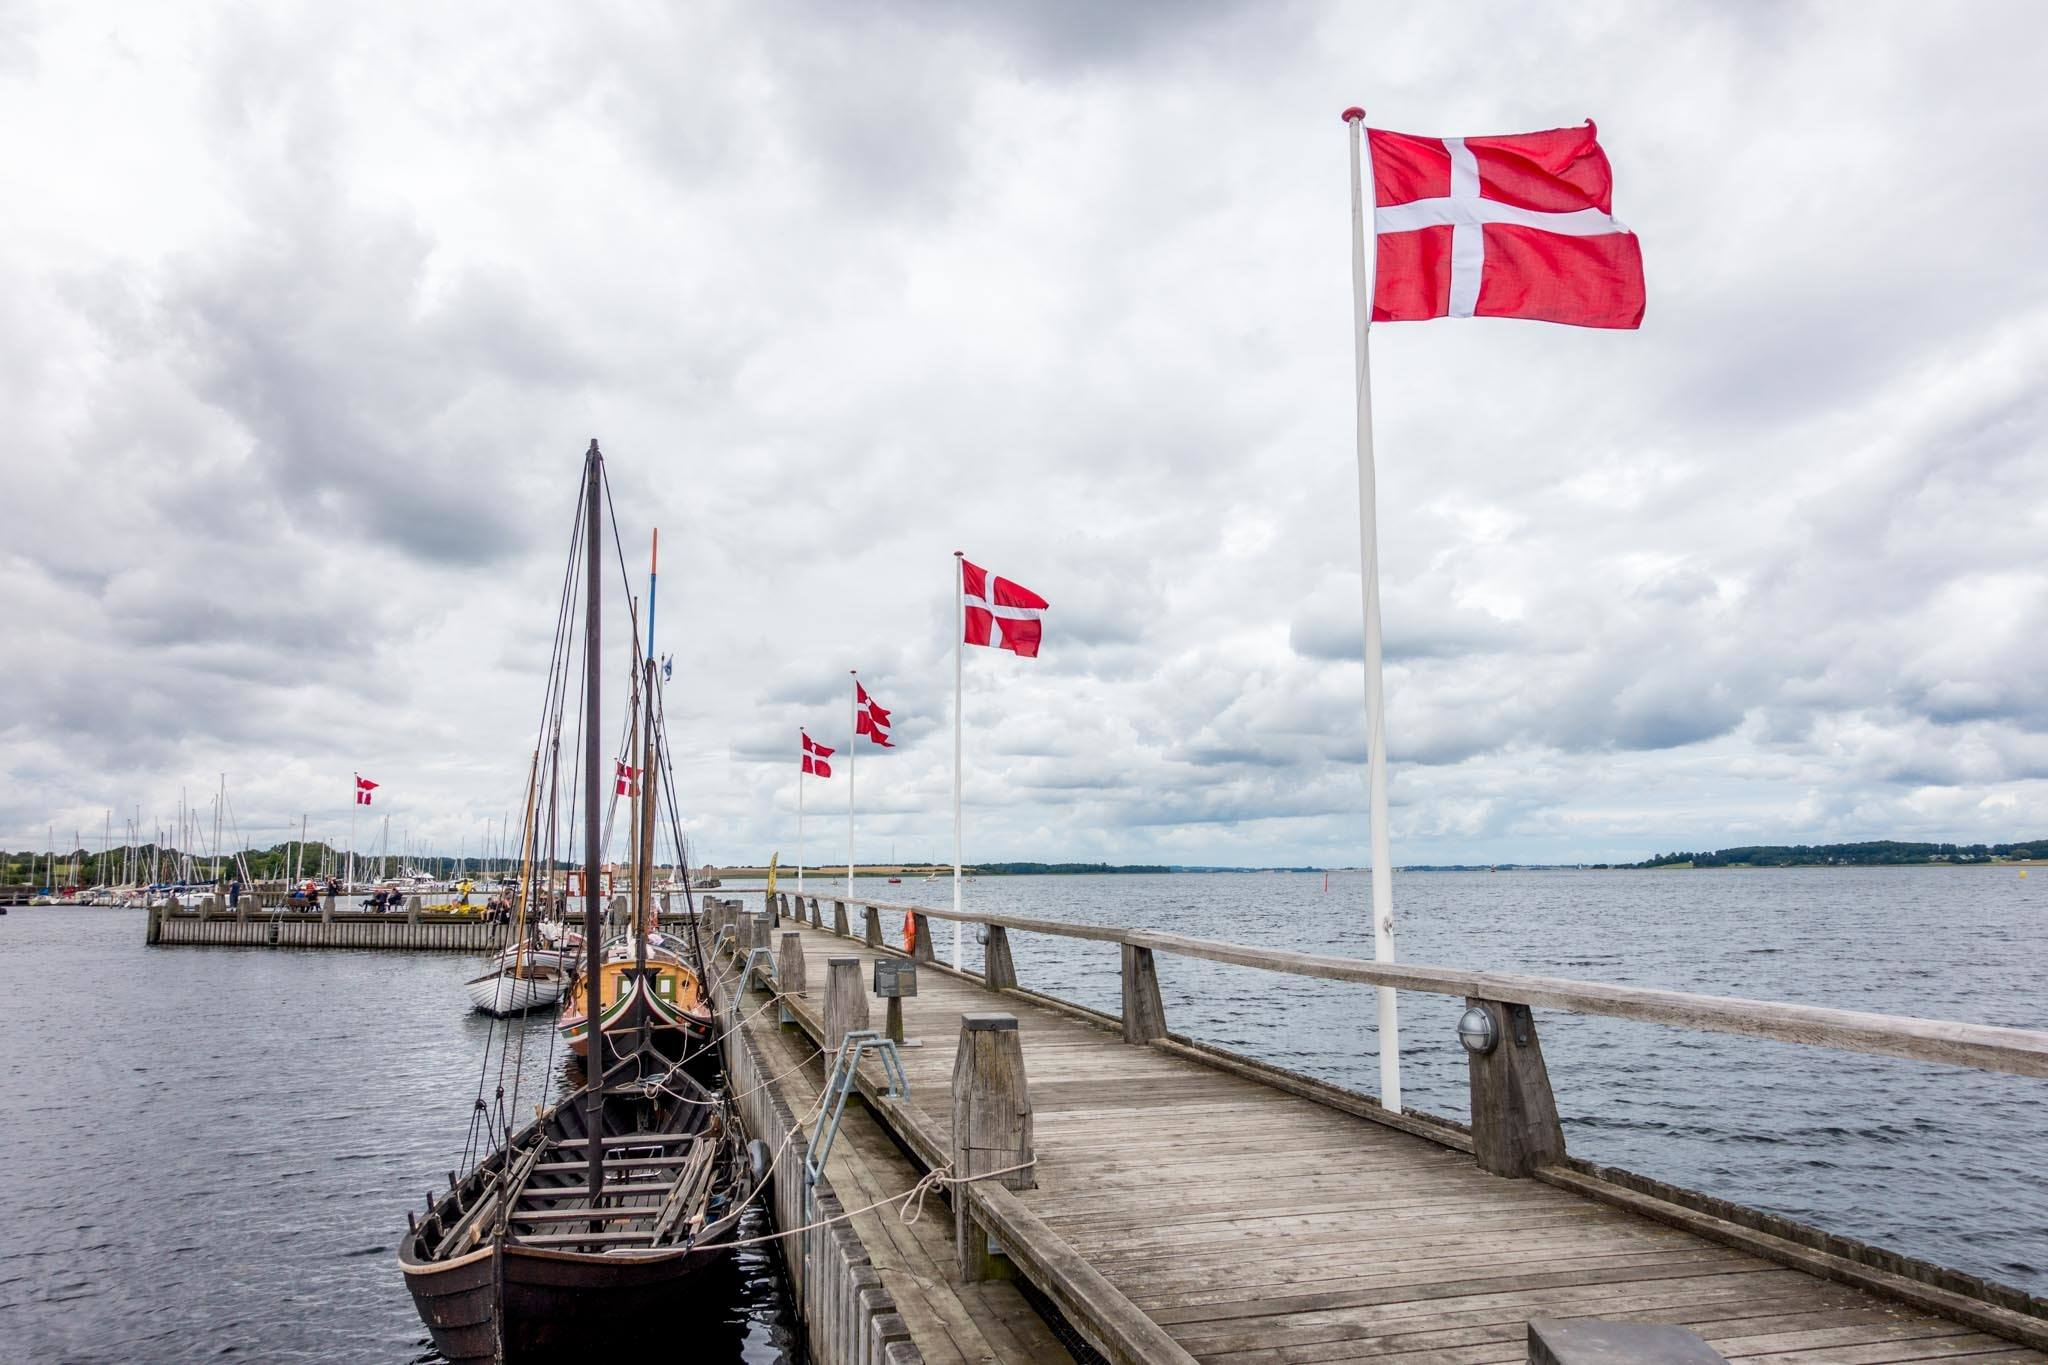 Replica ships at the Roskilde Viking Ship Museum in Denmark